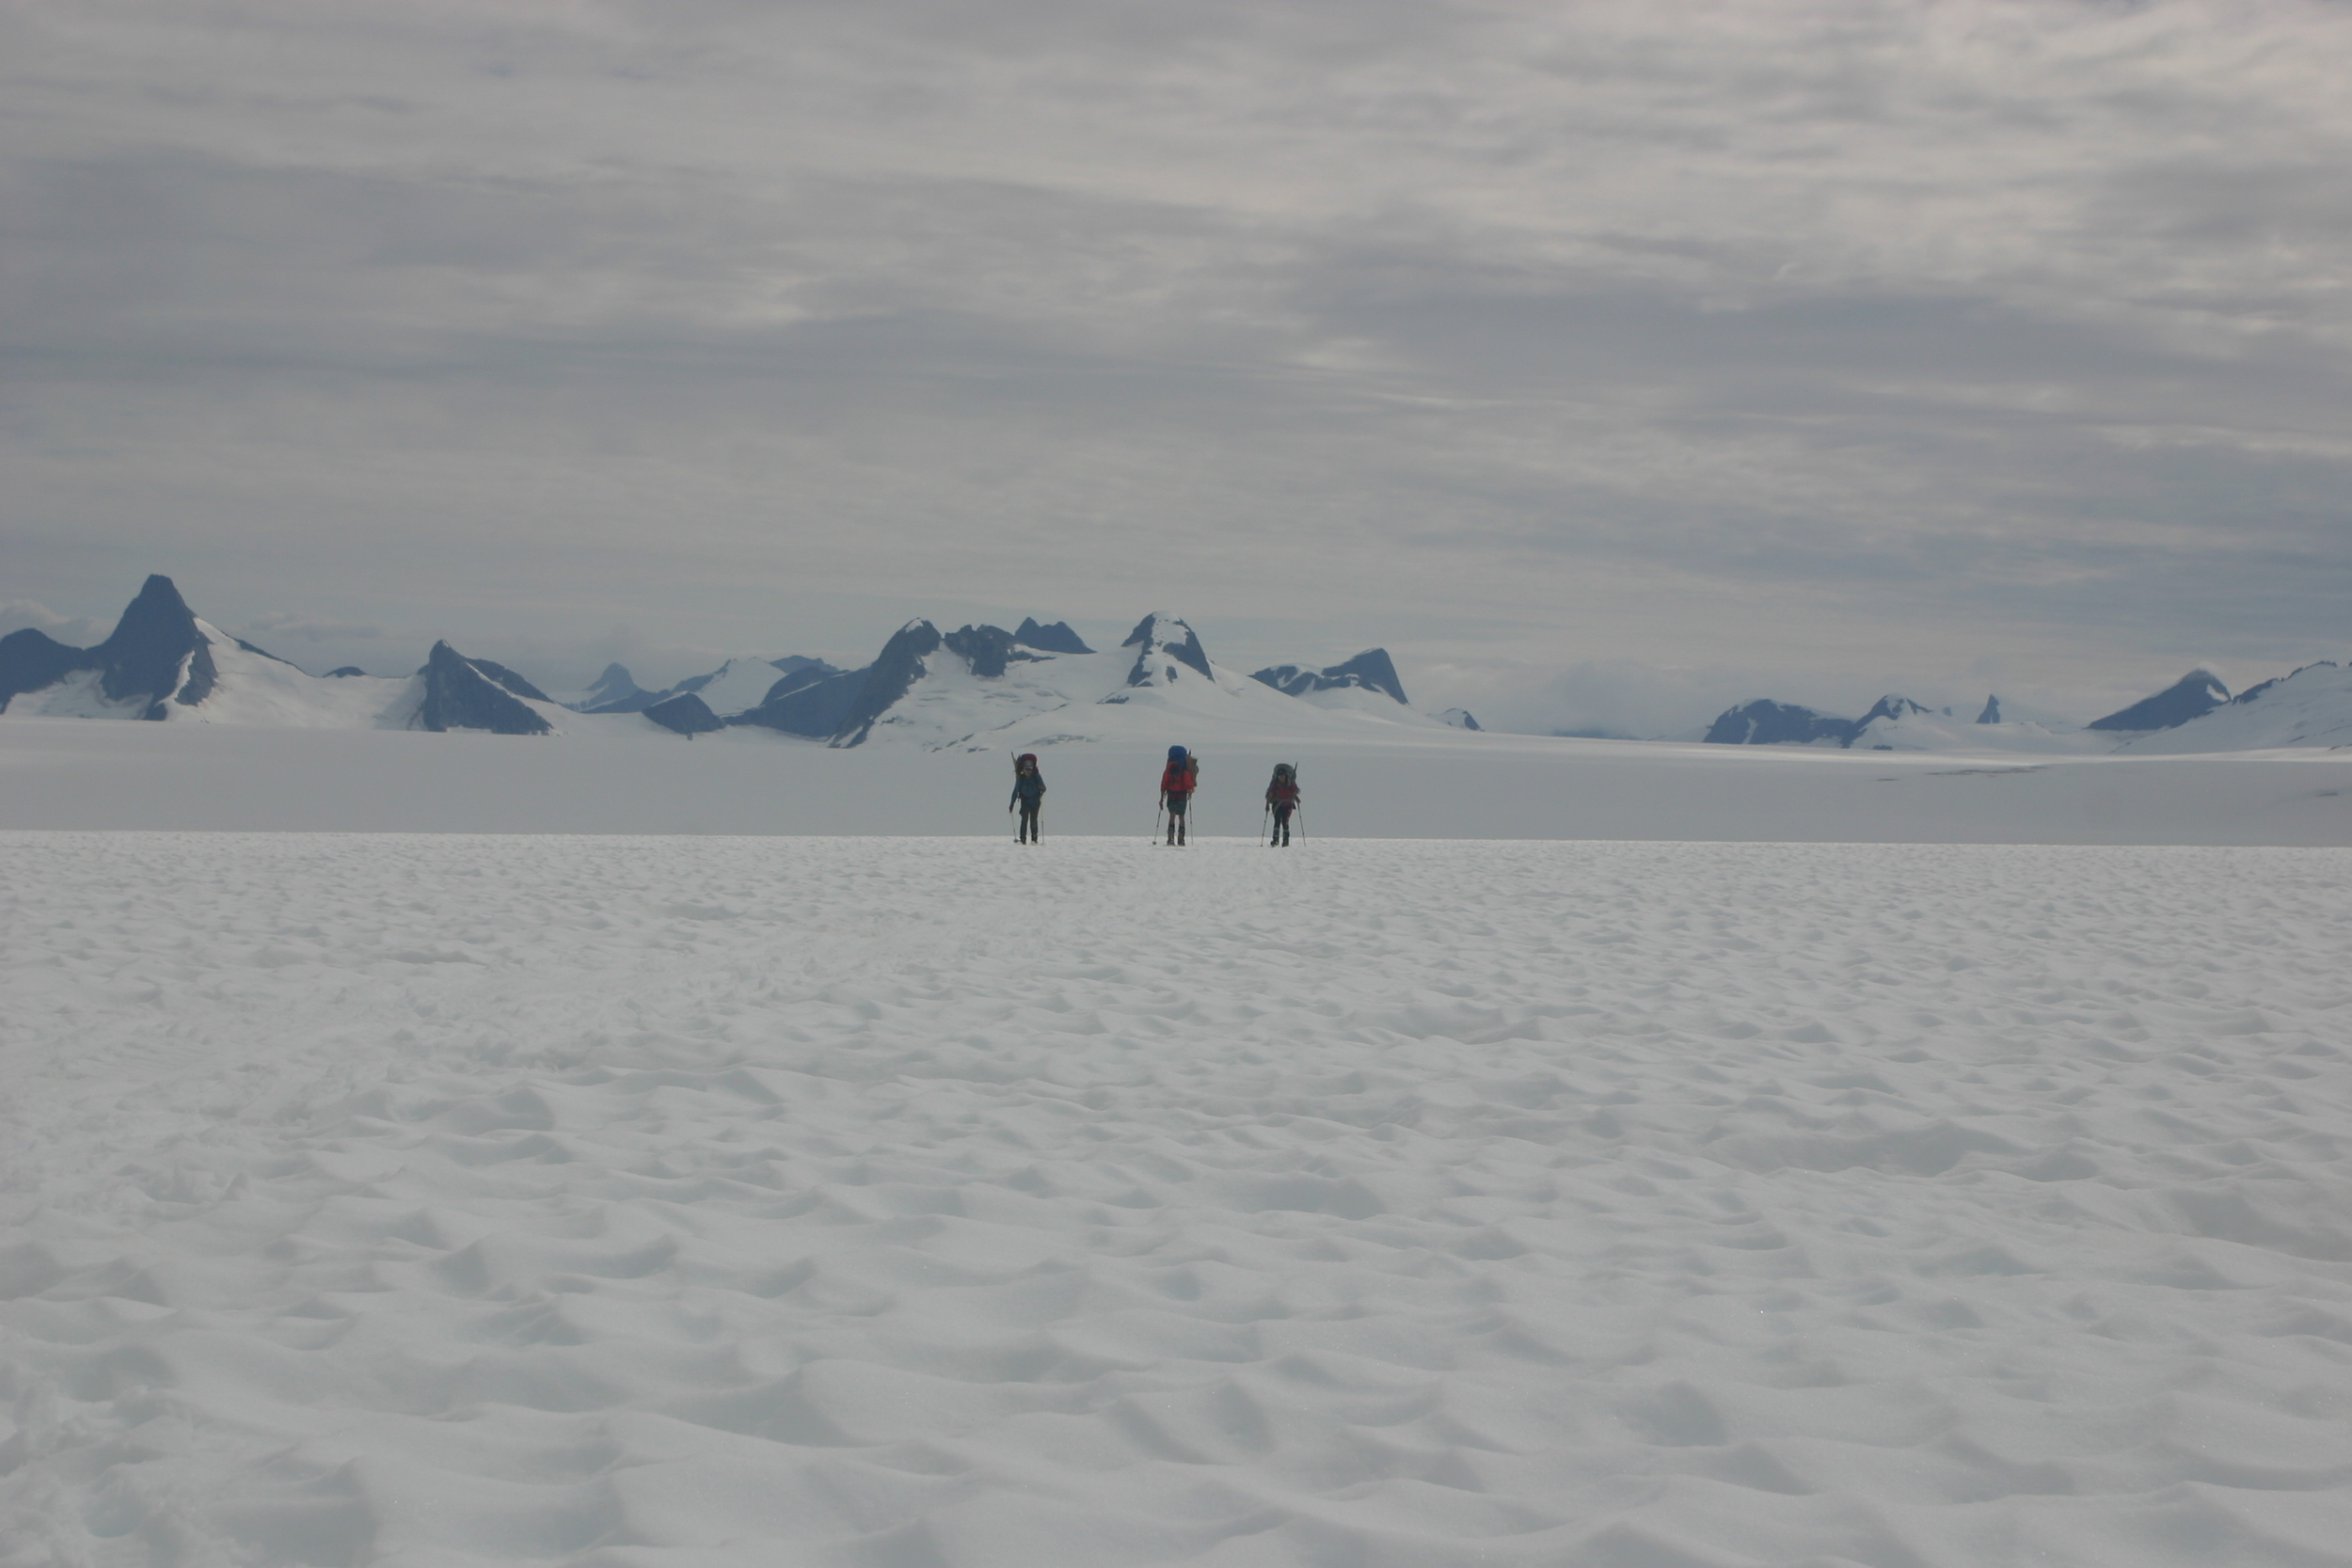 Completing the two-day traverse from Camp 17 to Camp 10. Photo by Catharine White.